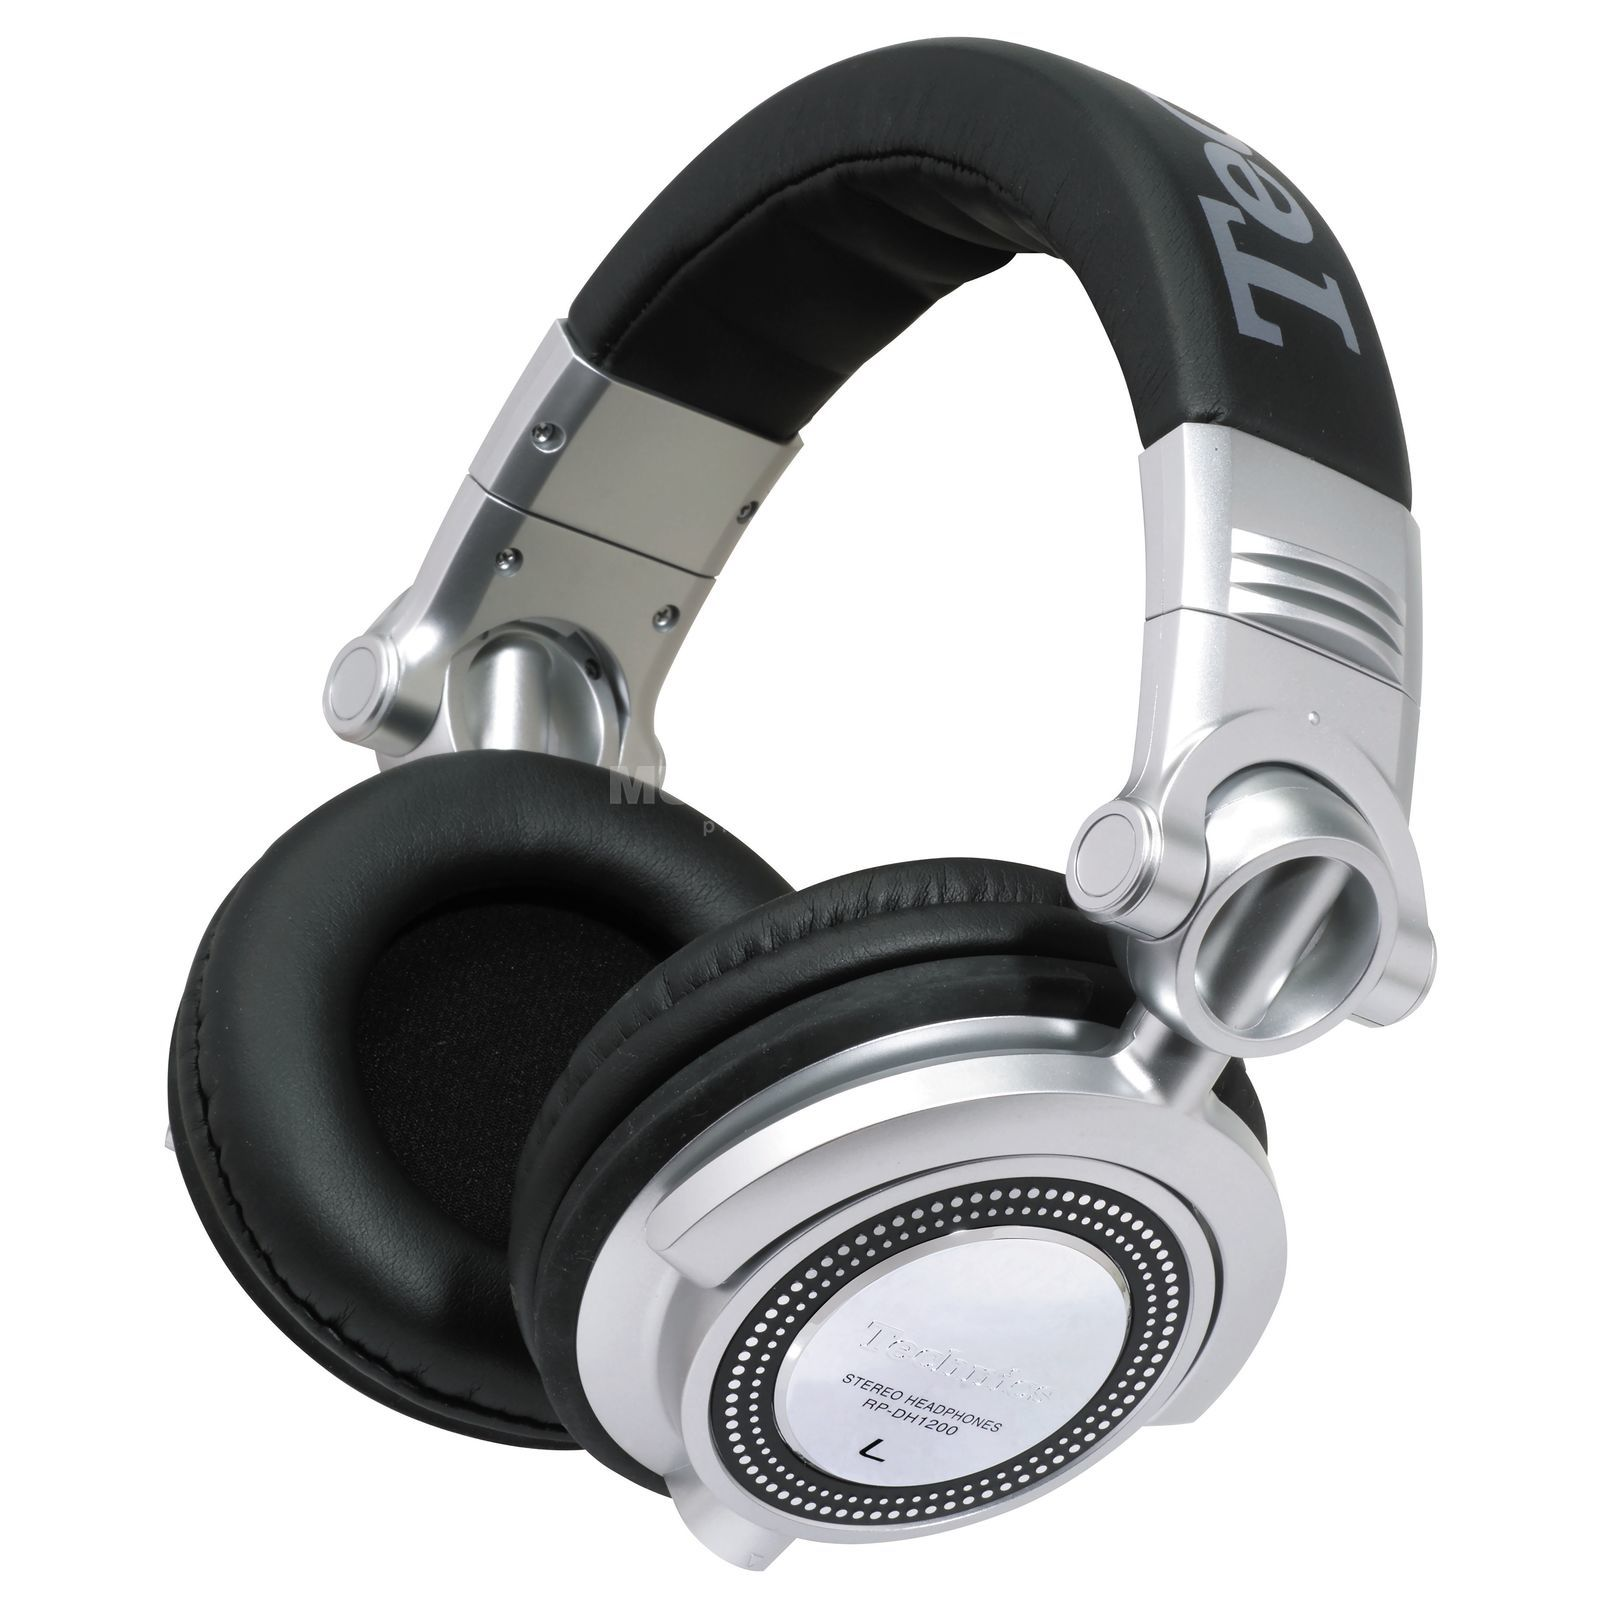 Technics RP-DH1200 DJ Headphones closed Product Image